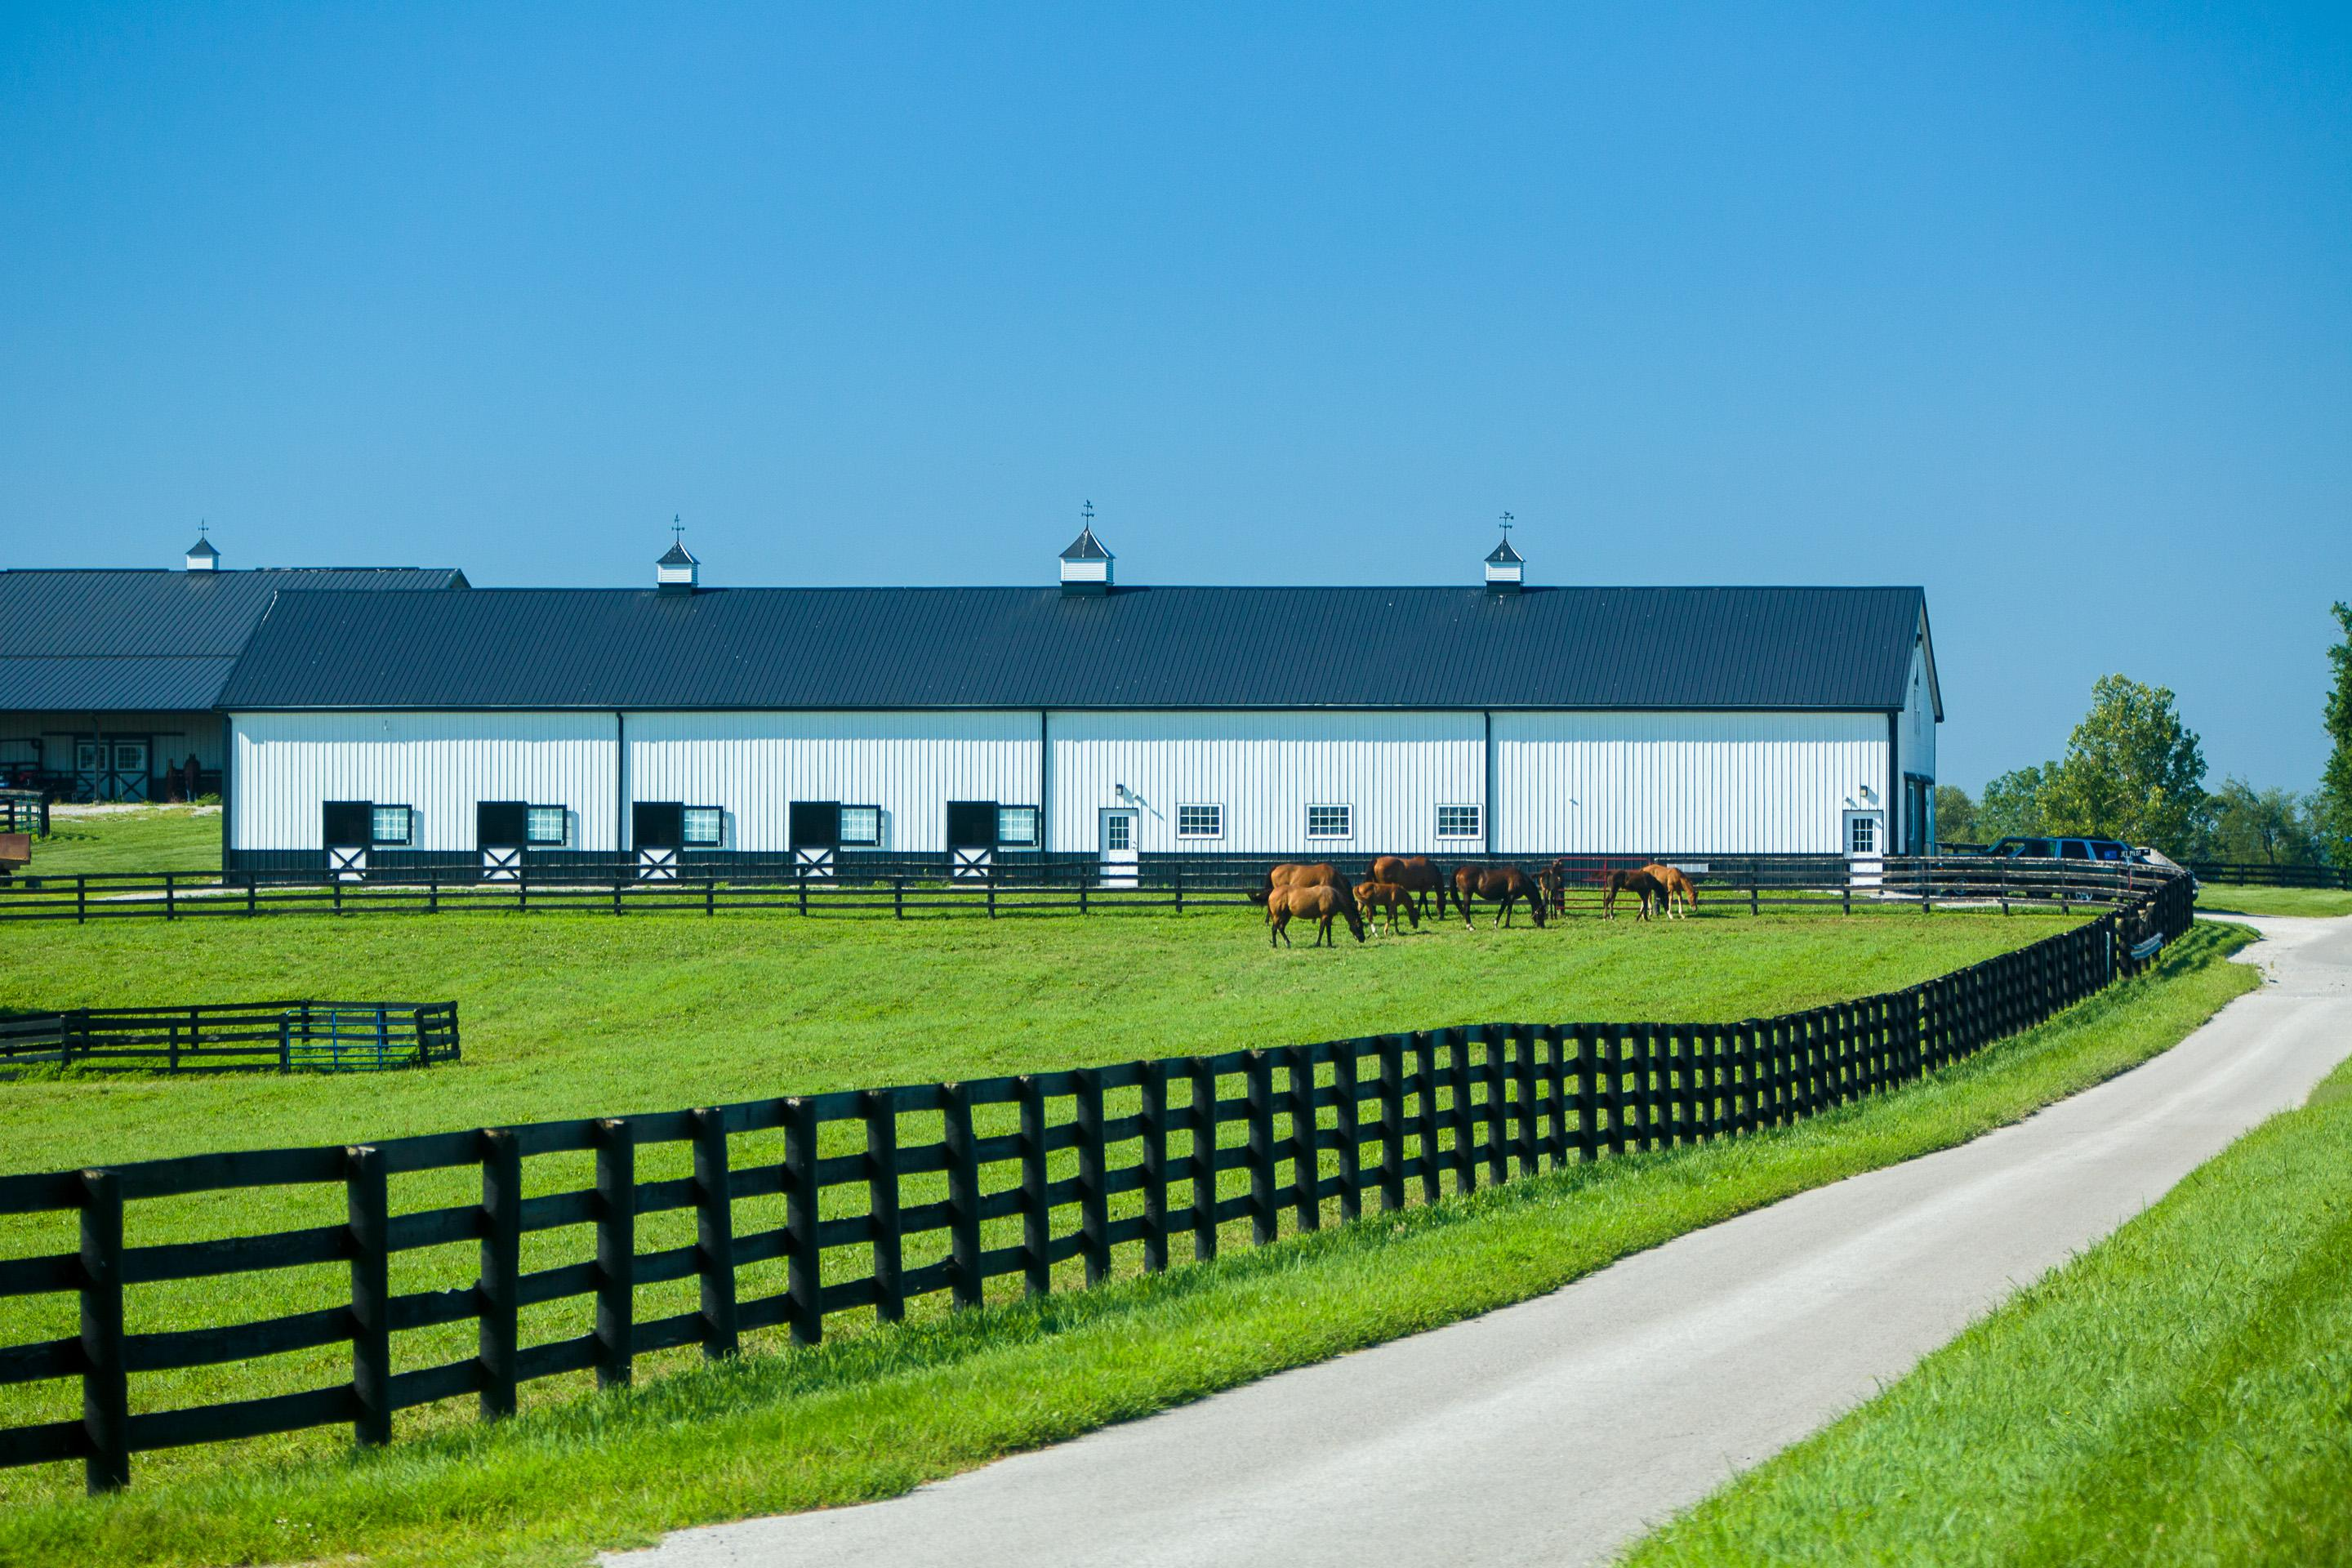 Maine Chance Farm barns